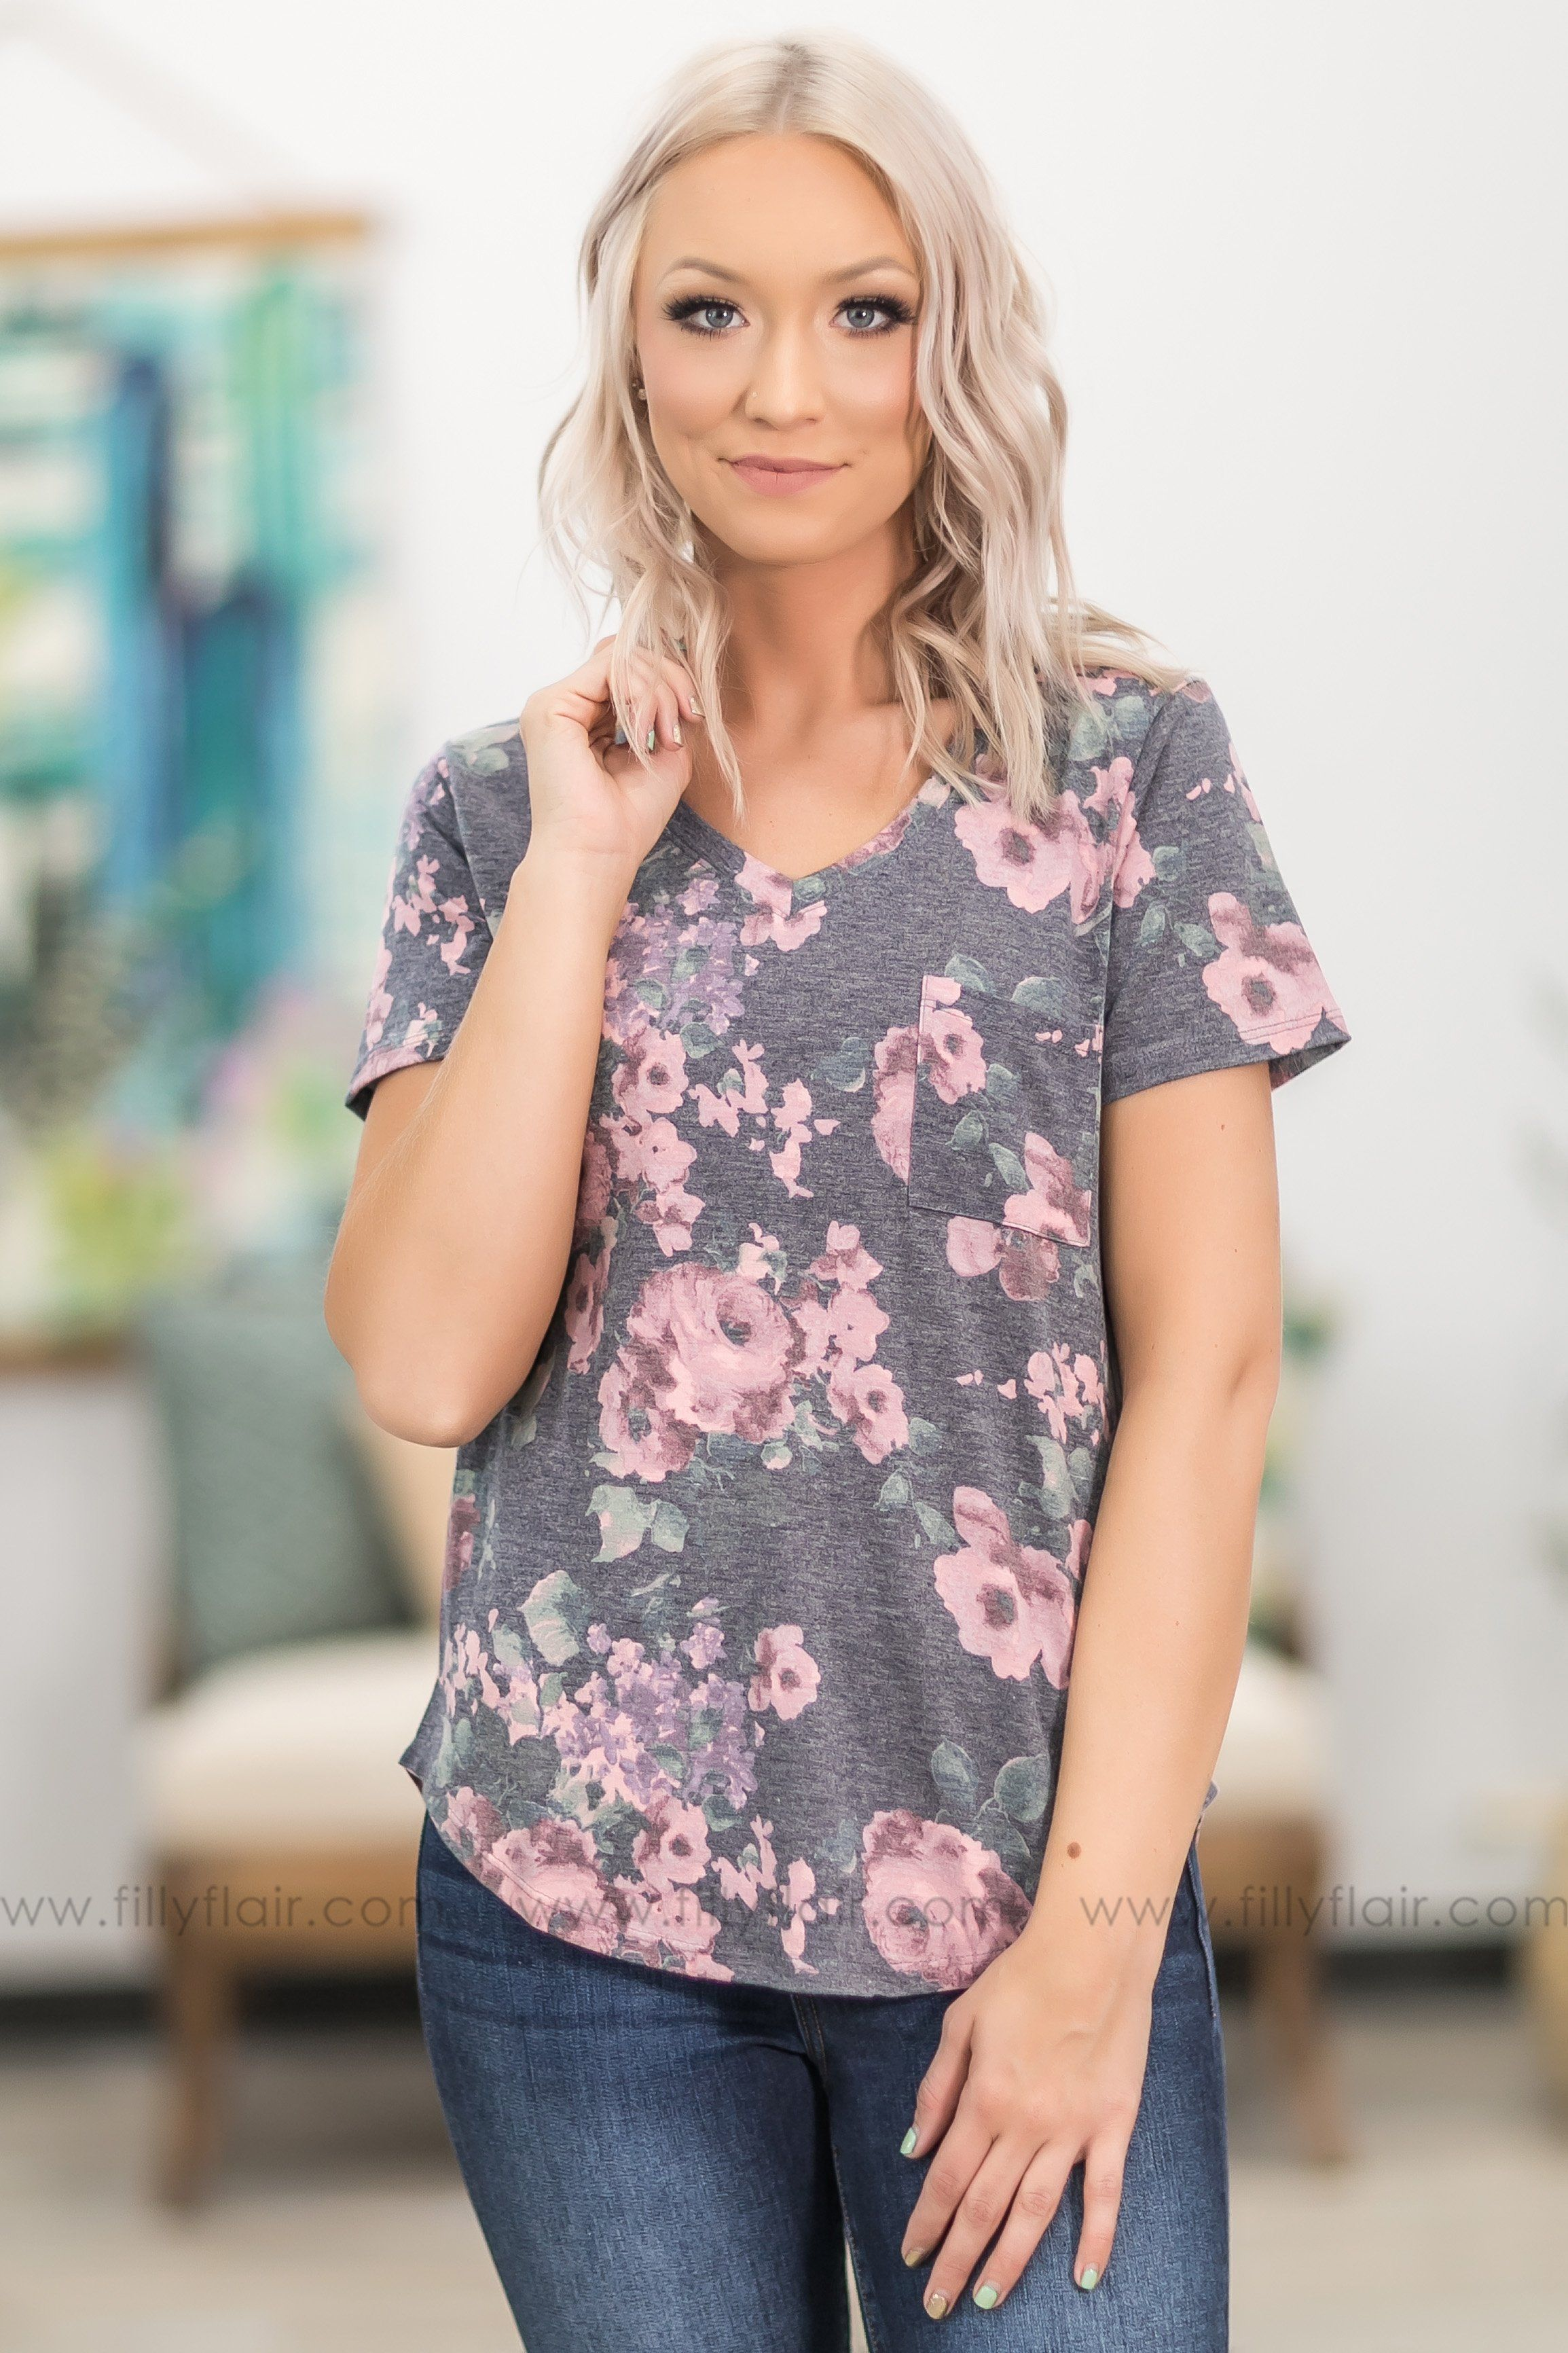 See You Smile Short Sleeve Chest Pocket Floral Top in Charcoal - Filly Flair